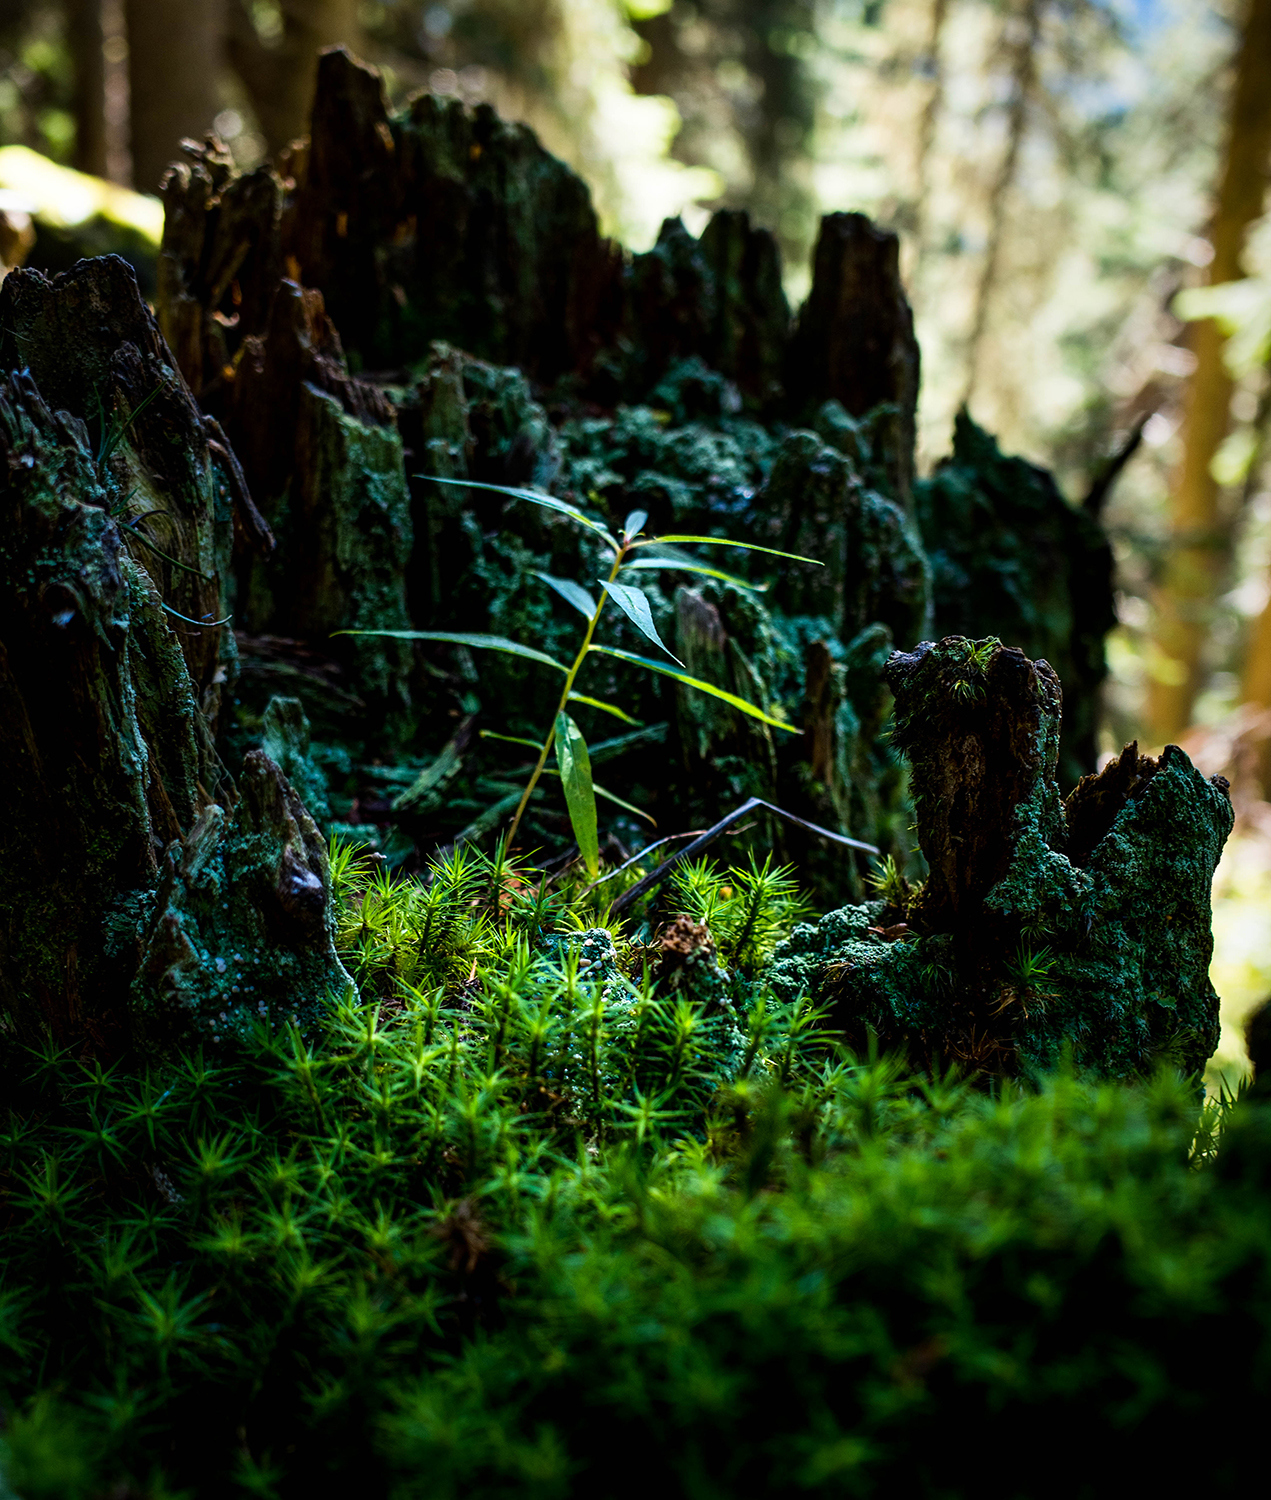 <p>A miniature forest grows in a tree stump that resembles the jutting peaks of the Dolomites, where this photo was taken.<br /></p>